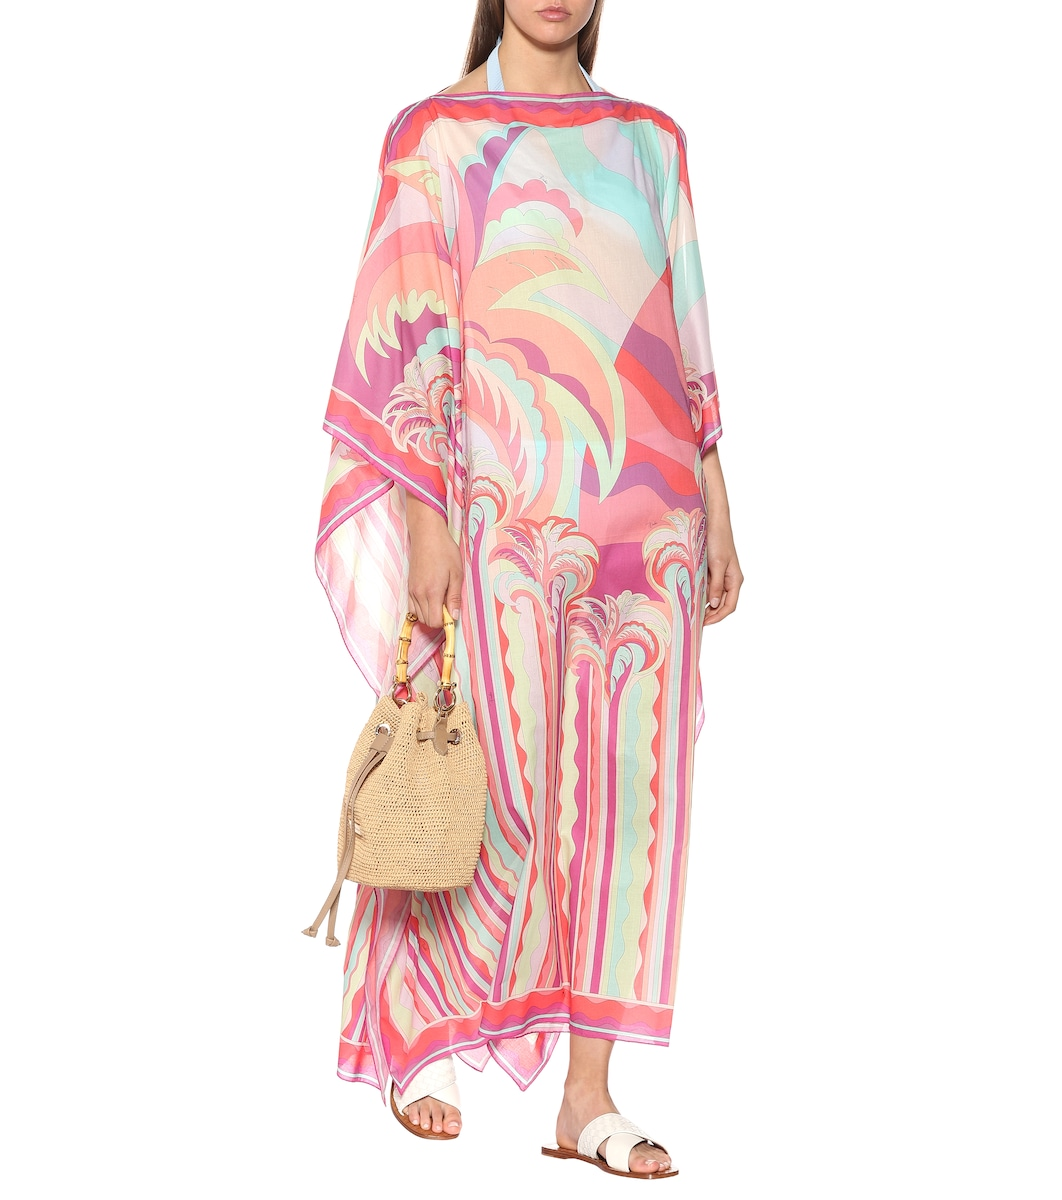 b7db407307 Printed Cotton Kaftan - Emilio Pucci Beach | mytheresa.com